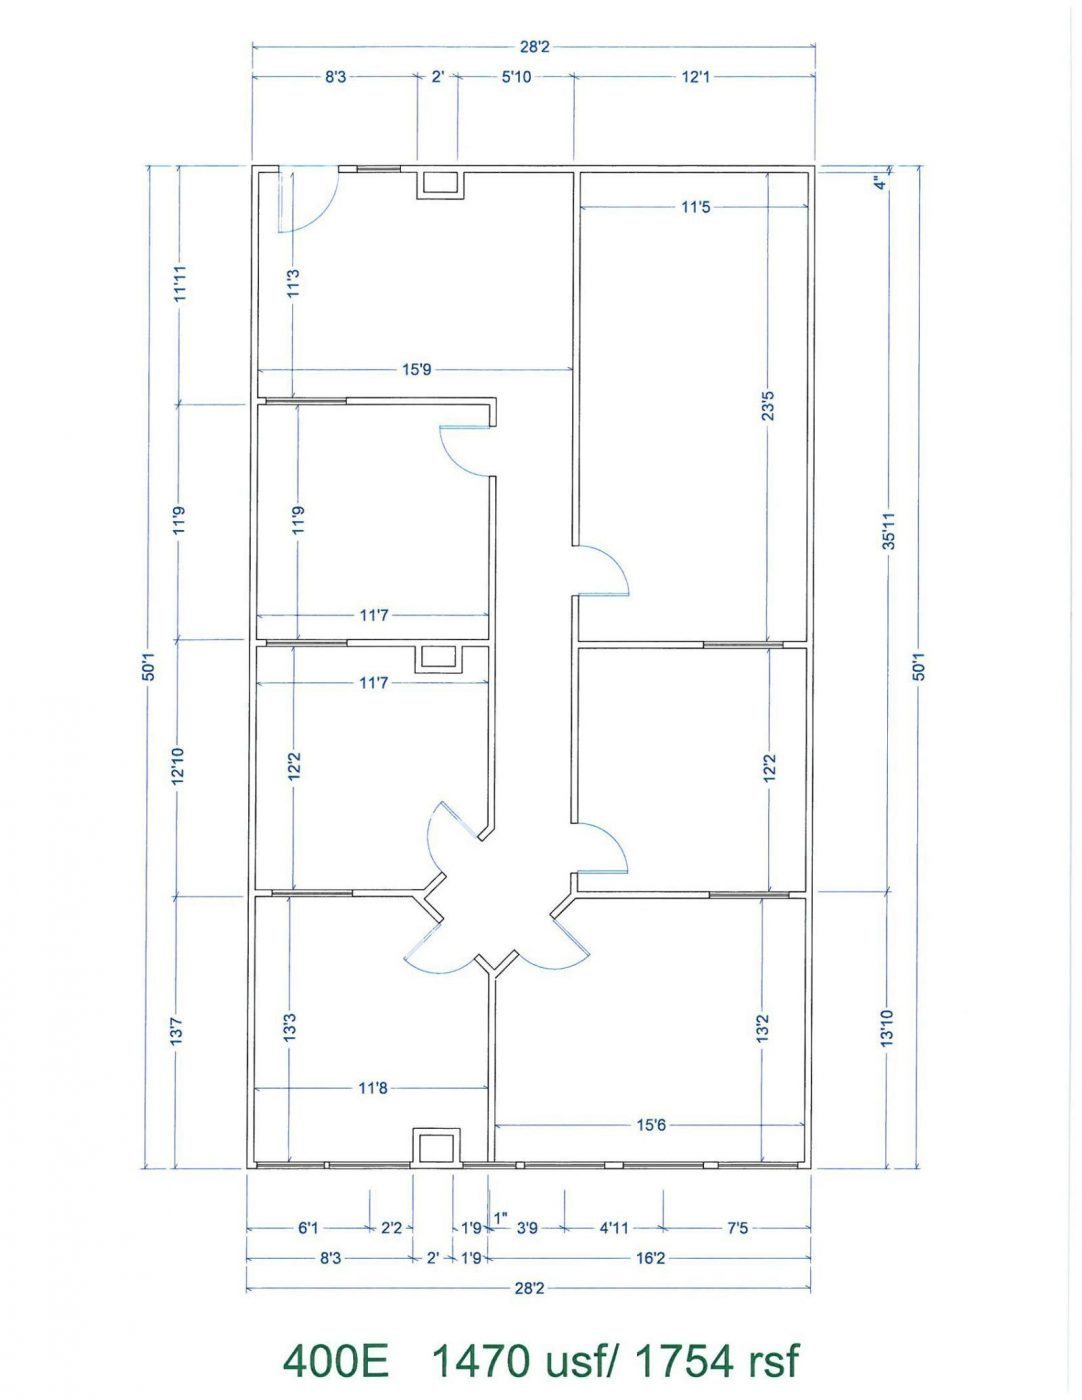 Floor Plan for unit 400E at 15565 Northland Dr Southfield, MI 48075